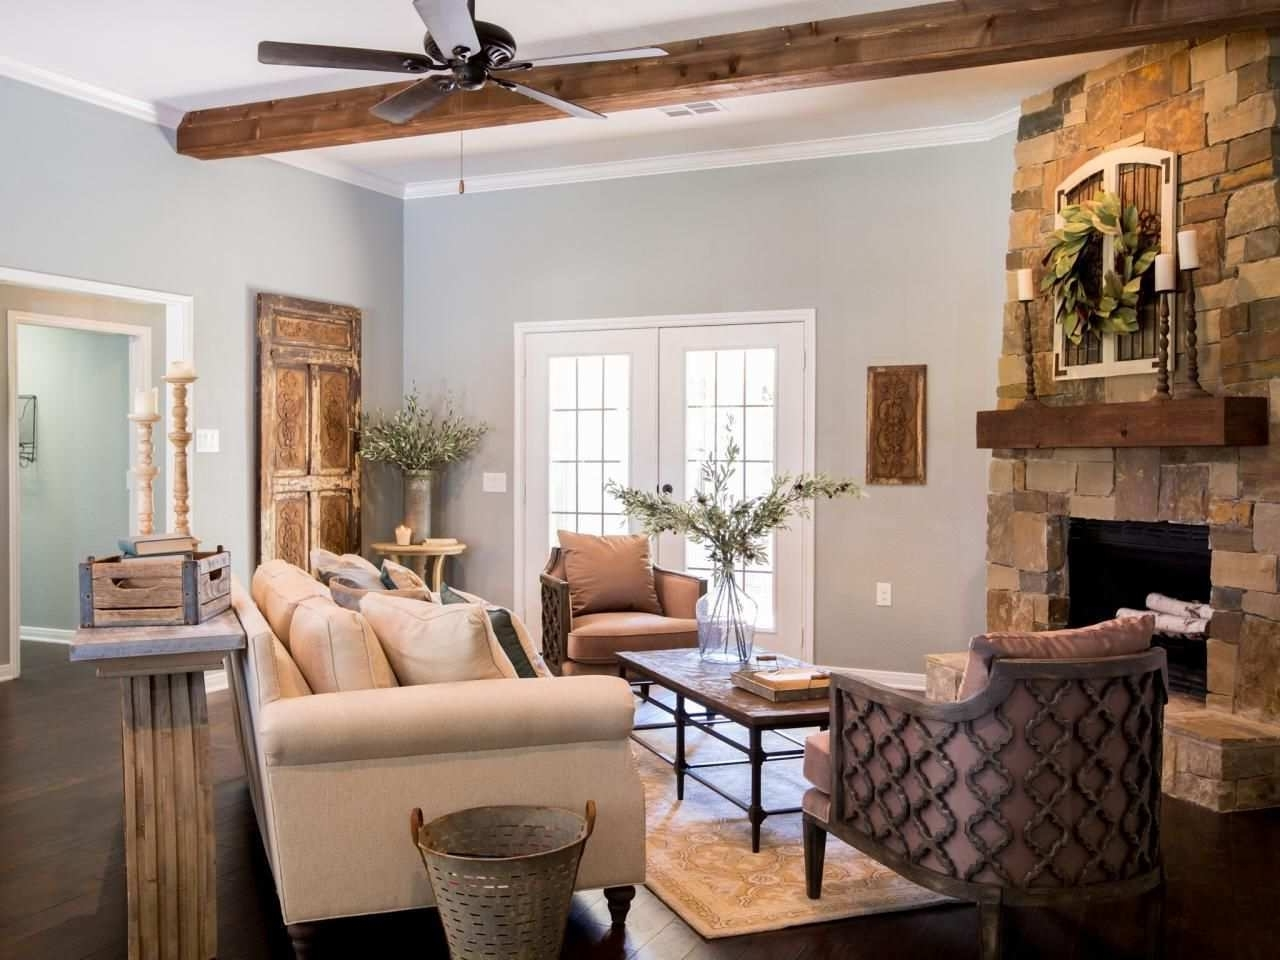 Popular Joanna Gaines Ceiling Fans Beautiful Fixer Upper Yours Mine Ours And Inside Joanna Gaines Outdoor Ceiling Fans (View 18 of 20)